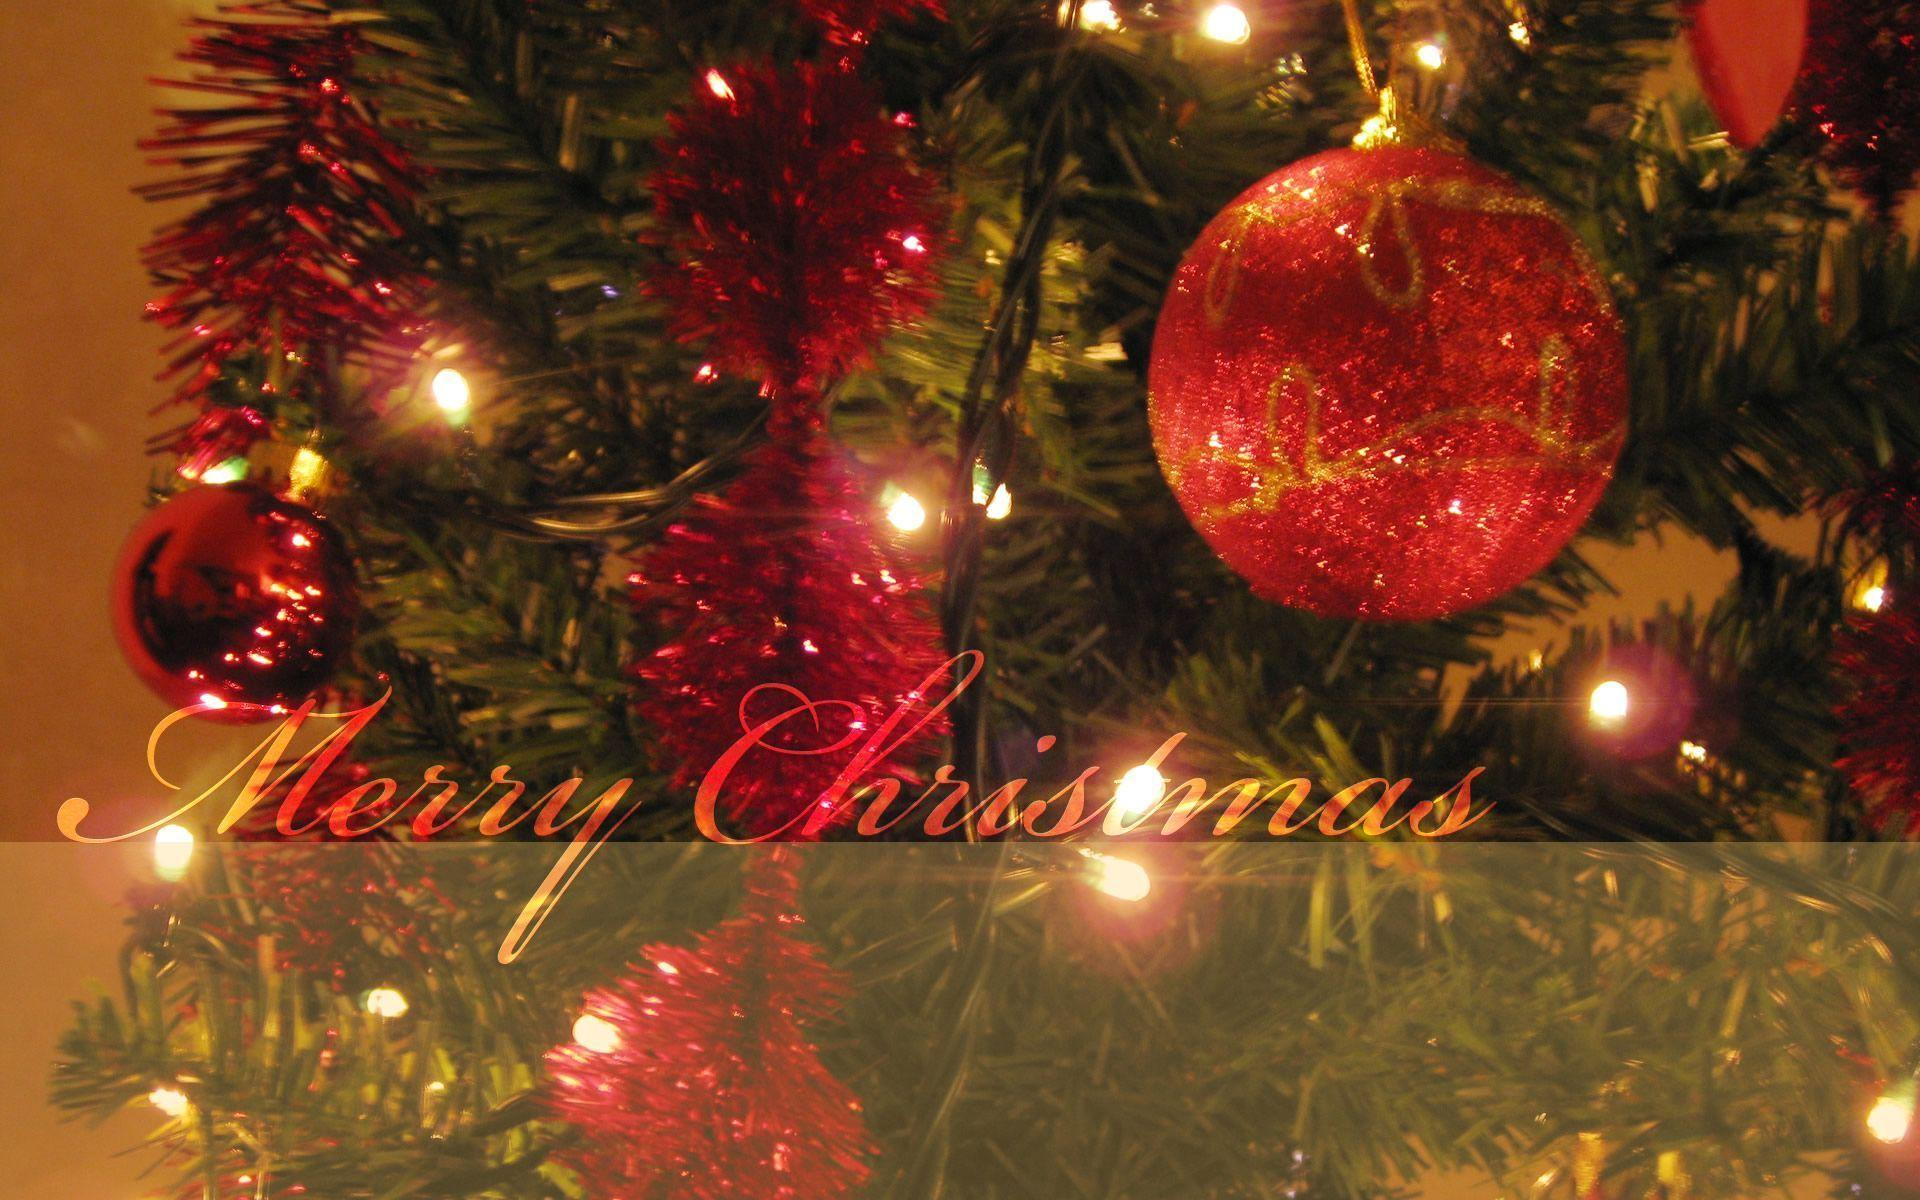 Wallpapers For > Christian Christmas Desktop Backgrounds